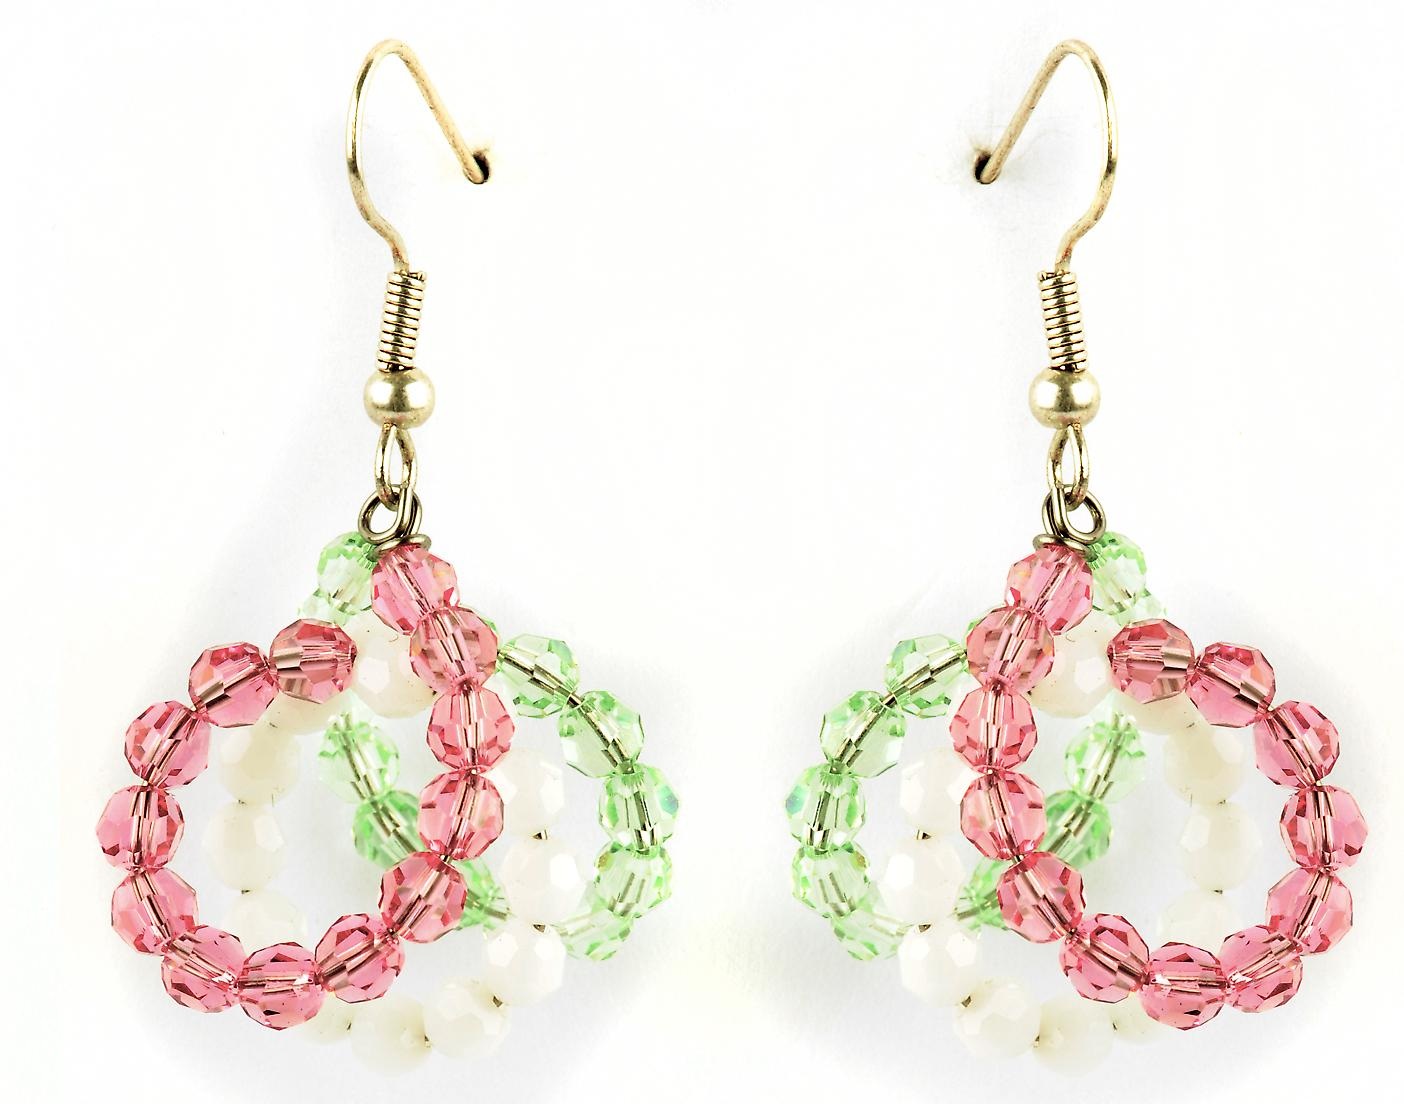 Waooh - Fashion Jewellery - WJ0772 - On Earrings with Swarovski Pink & White - Frame Color Silver